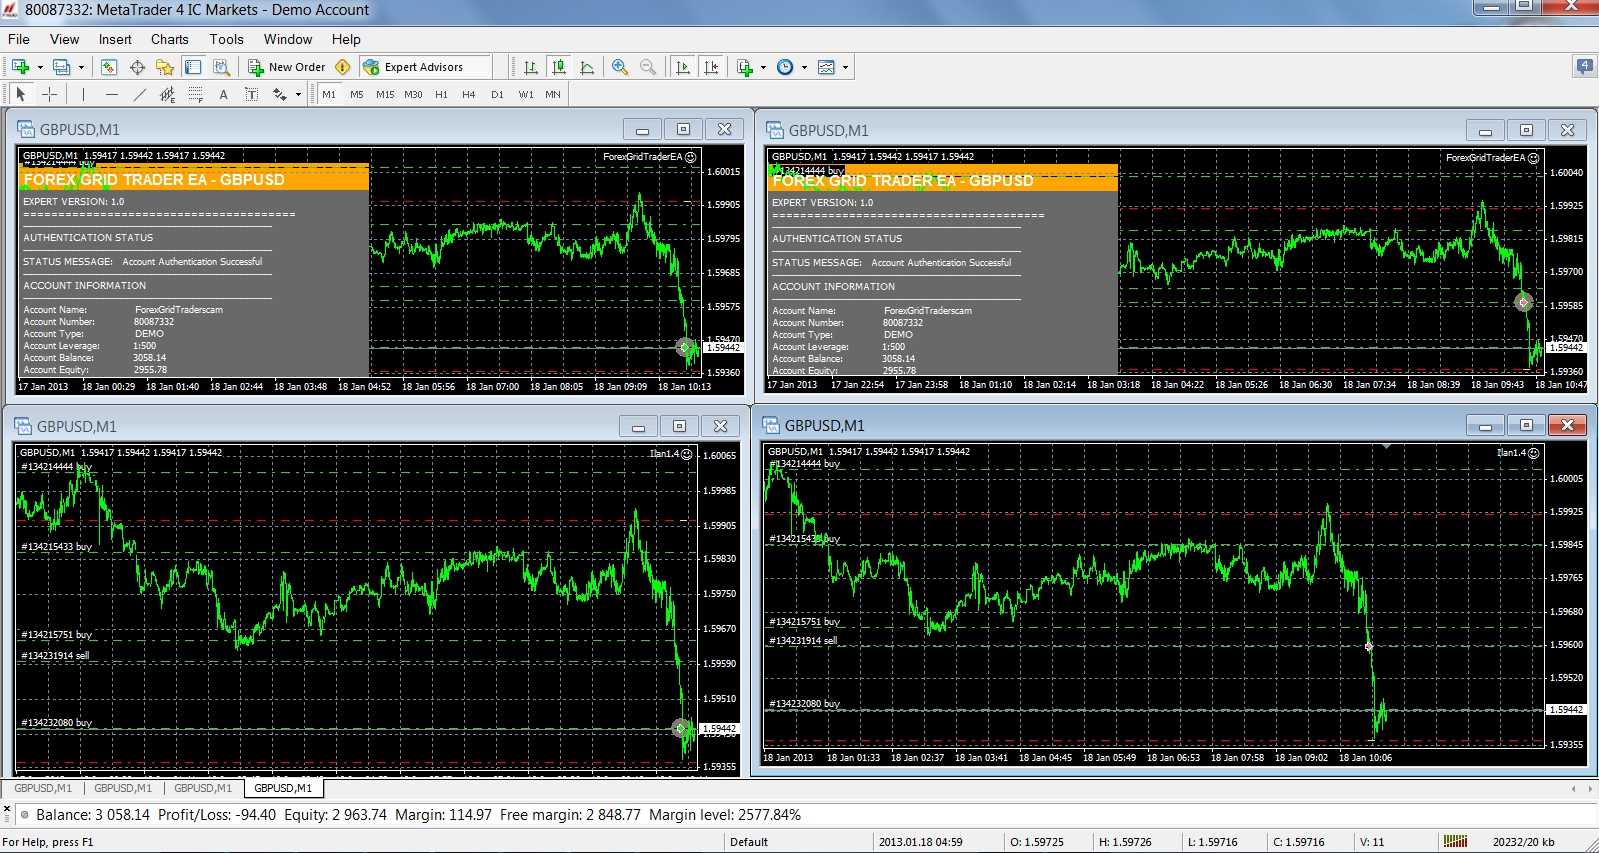 Tstw 24 trading system download